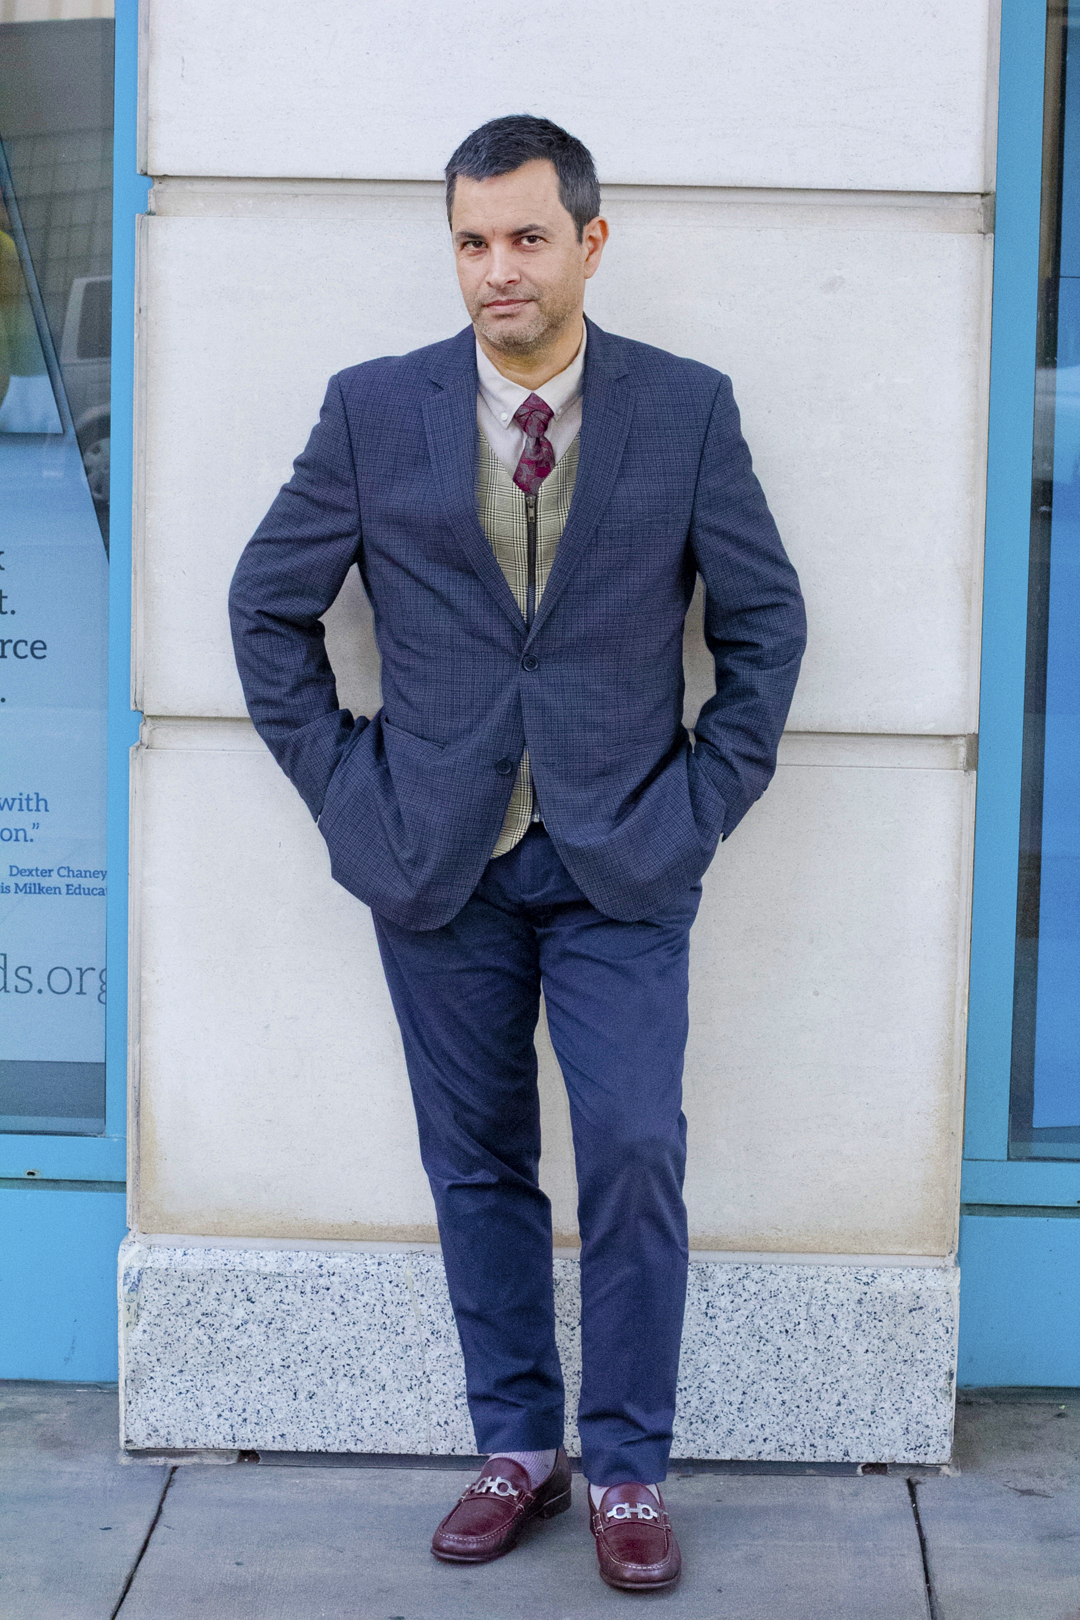 full view of my pattern suit outfit and tie